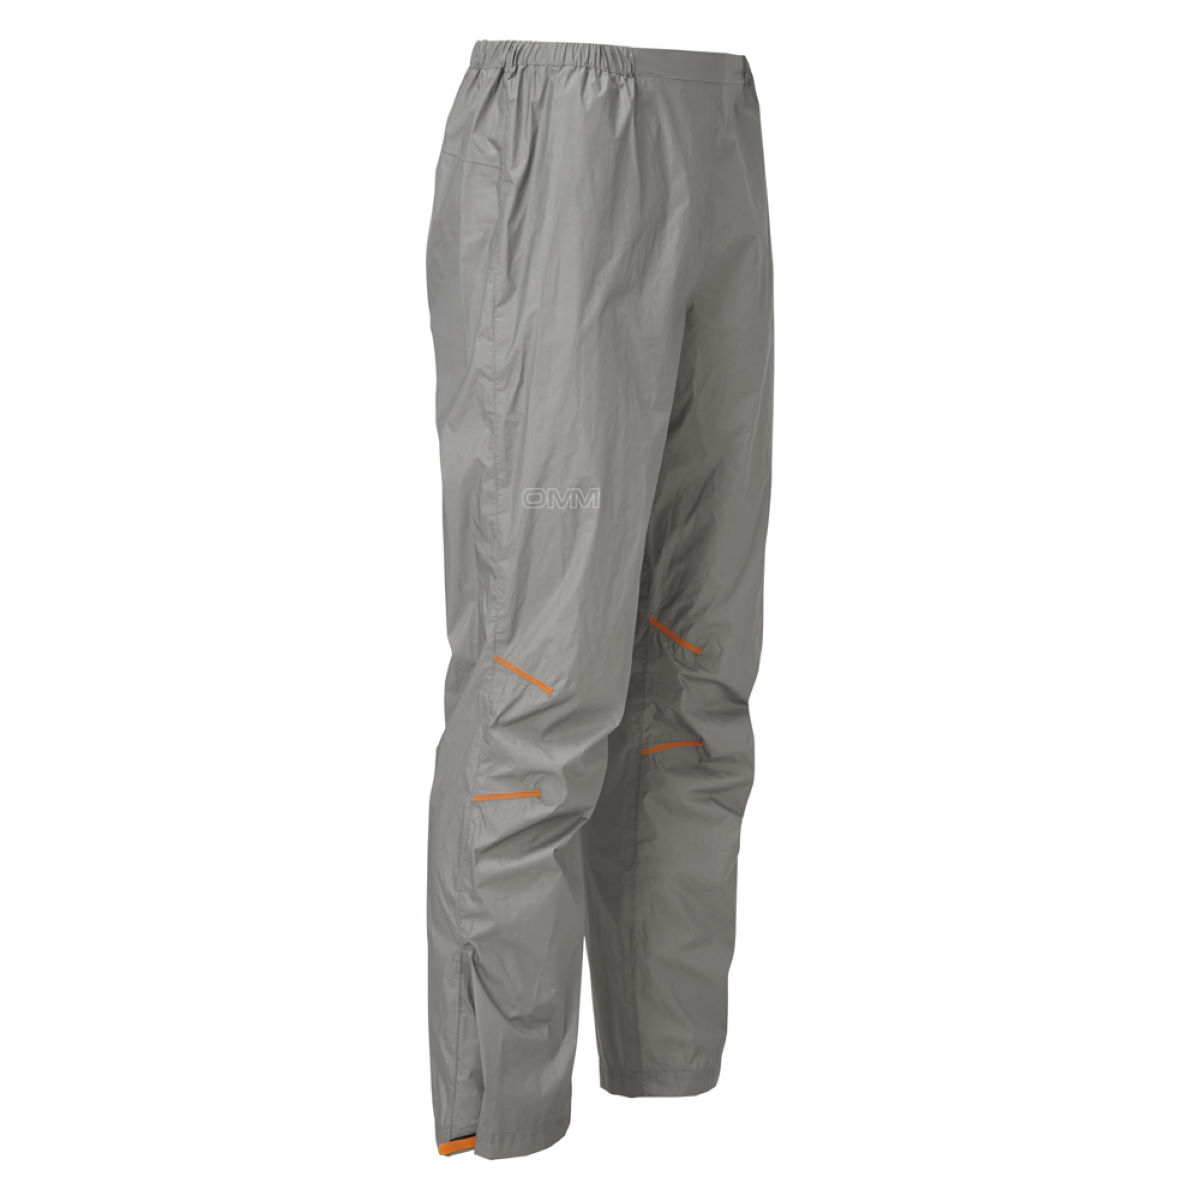 OMM OMM Halo Pant   Trousers